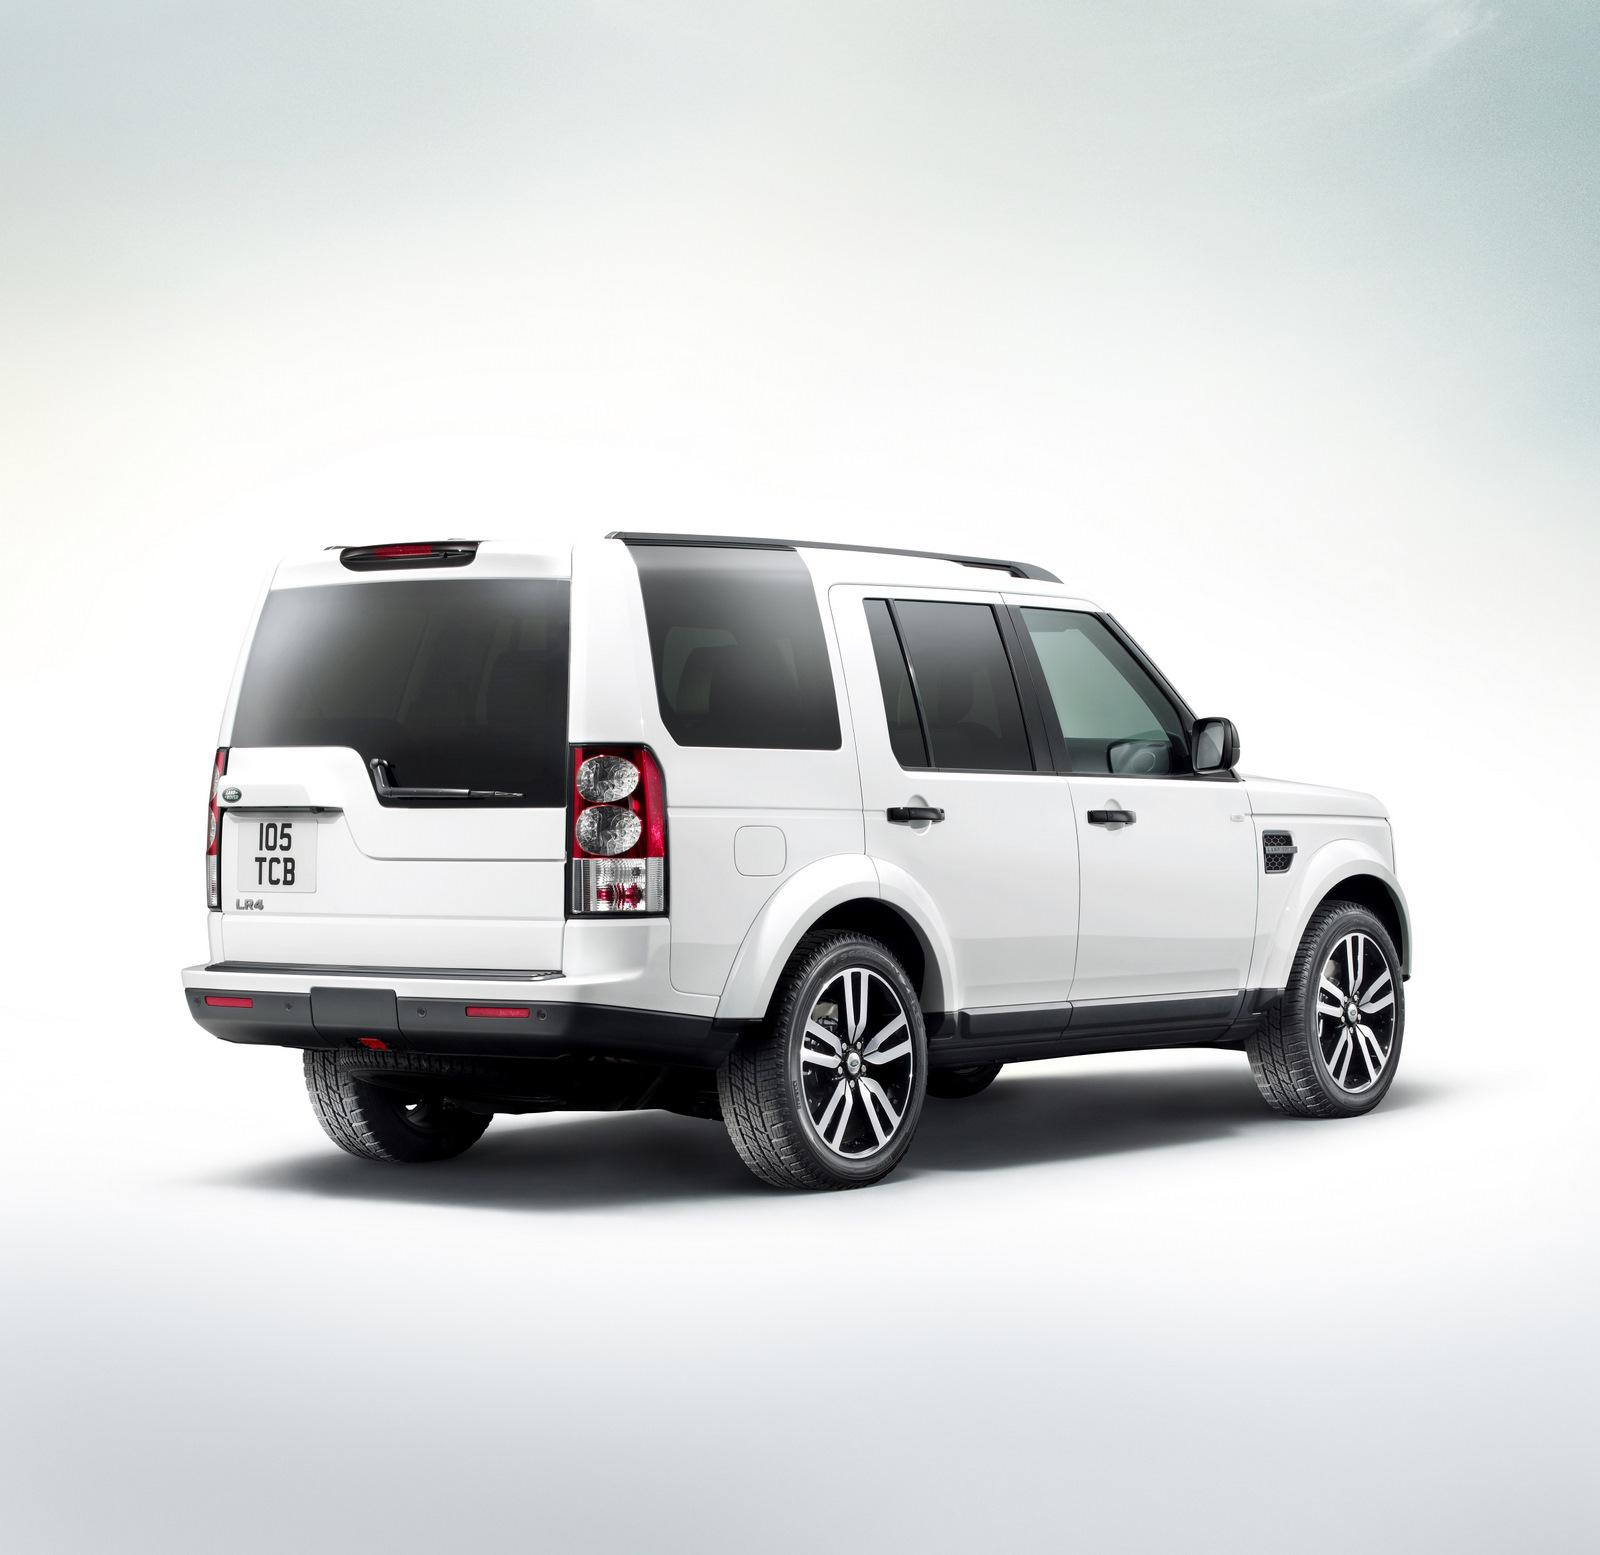 https://www.automobilesreview.com/gallery/2011-land-rover-discovery-4-landmark-special-edition/2011-land-rover-discovery-4-landmark-special-edition-05.jpg